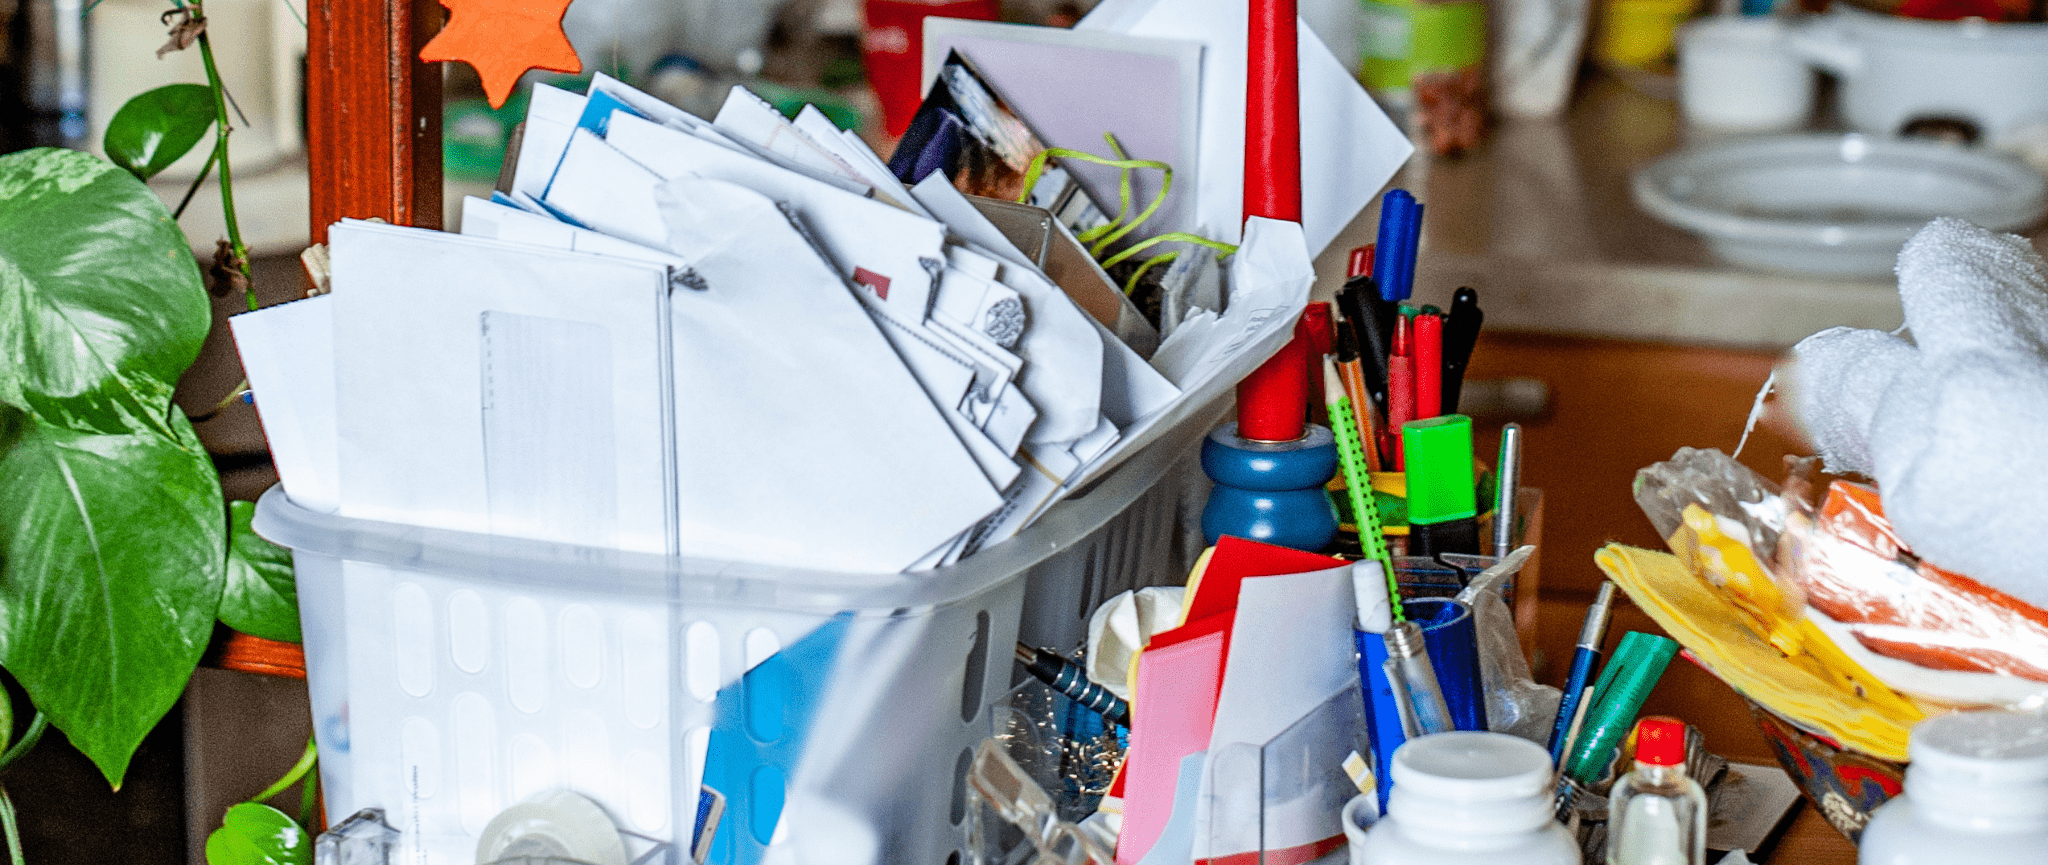 A messy kitchen countertop with a plastic bin overflowing with papers and other objects